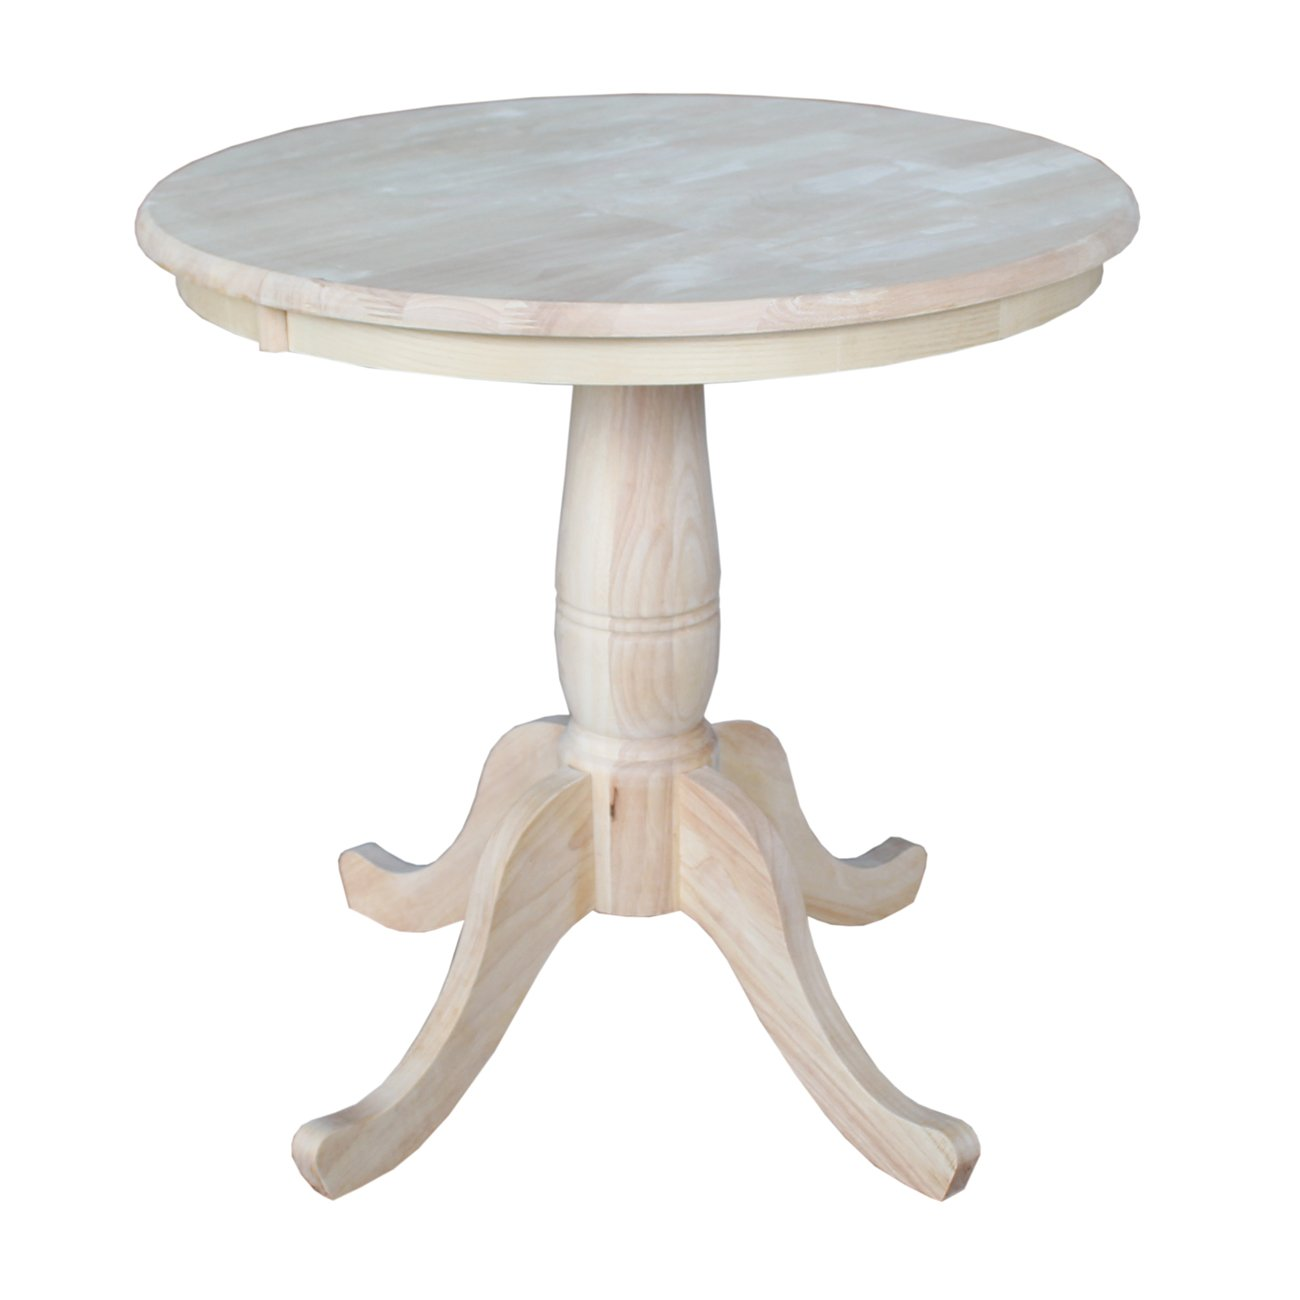 Standard Dining Room Table Dimensions Amazoncom International Concepts Round Top Adjustable Pedestal